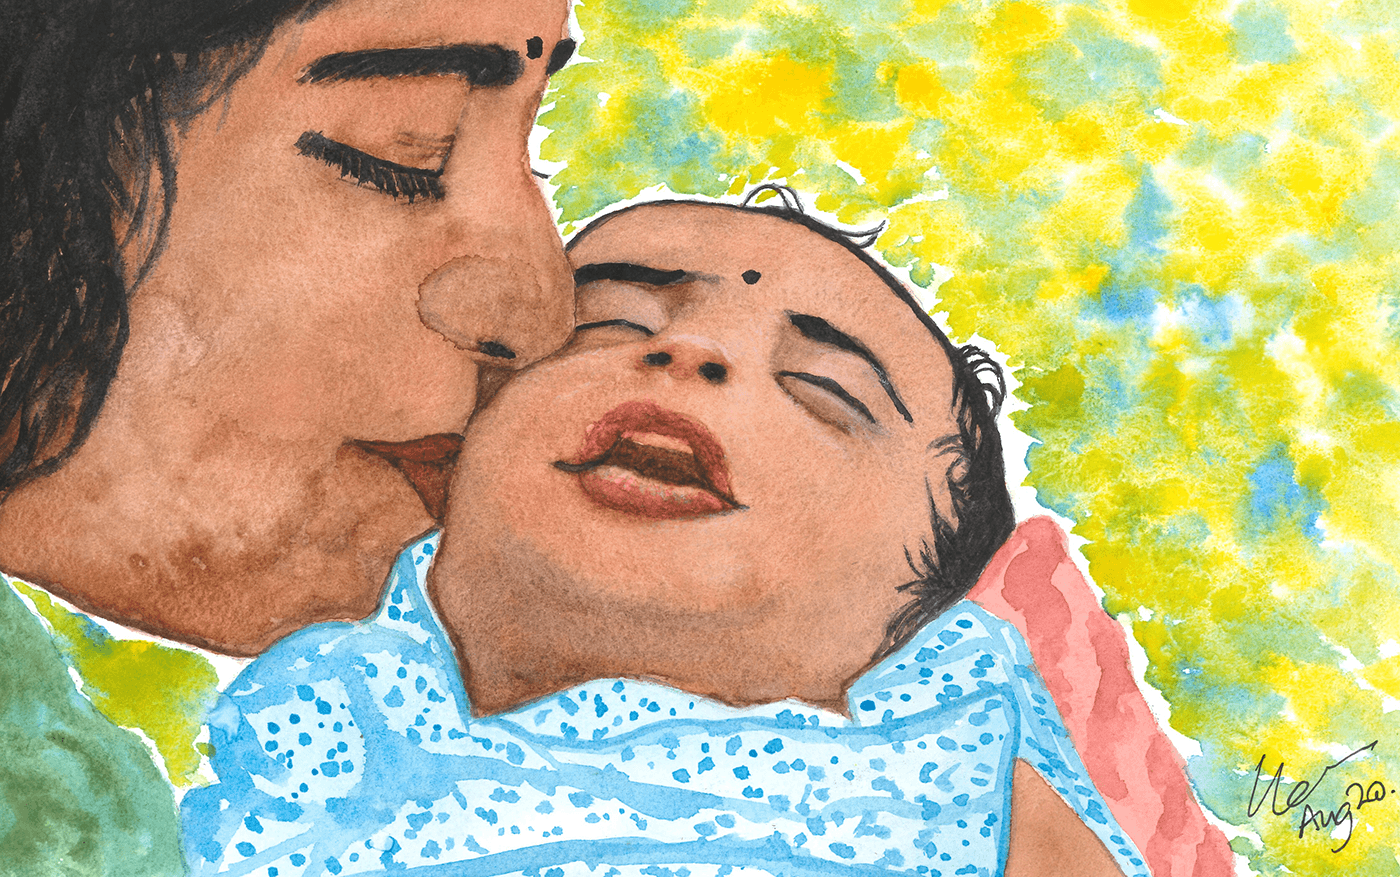 a painting of a woman with brown skin and dark hair kisses her newborn baby